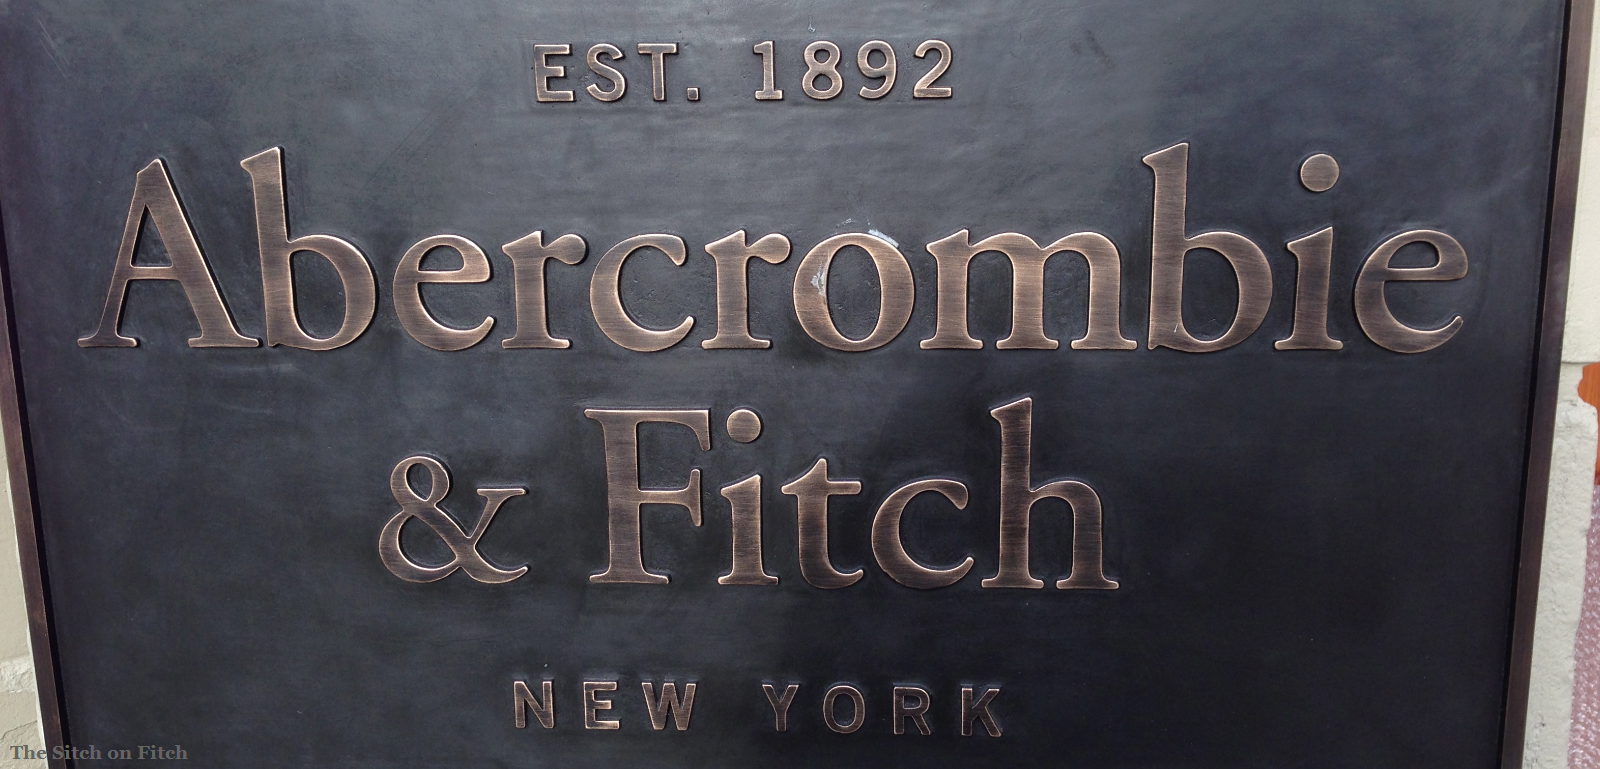 abercrombie logo moose hollister logo png abercrombie and fitch logo ...